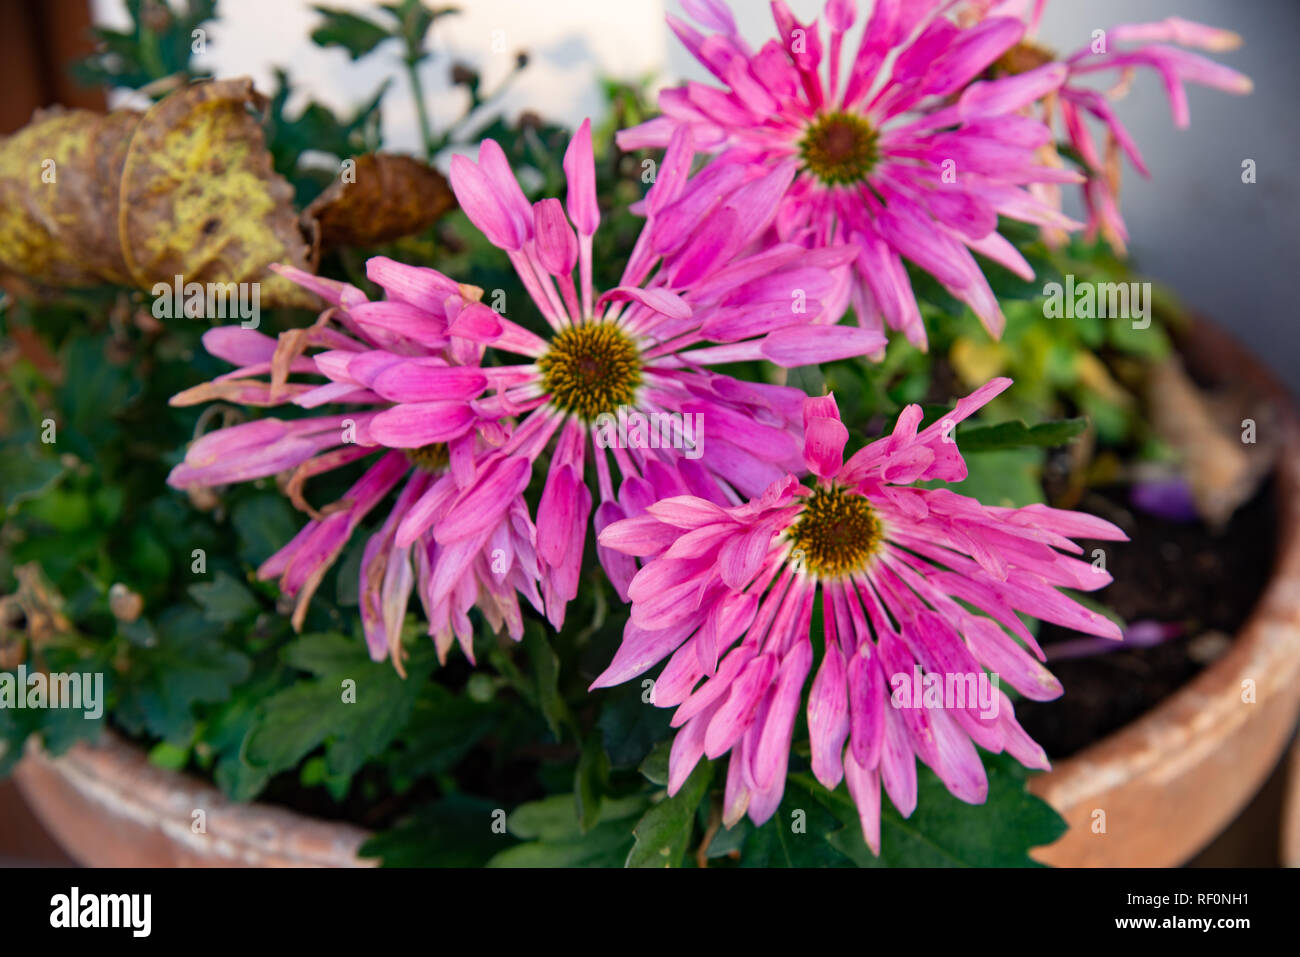 Pink aster cultivated in pot. Scientific name Aster, is a genus of dicotyledonous spermatophyte plants belonging to the Asteraceae family. - Stock Image